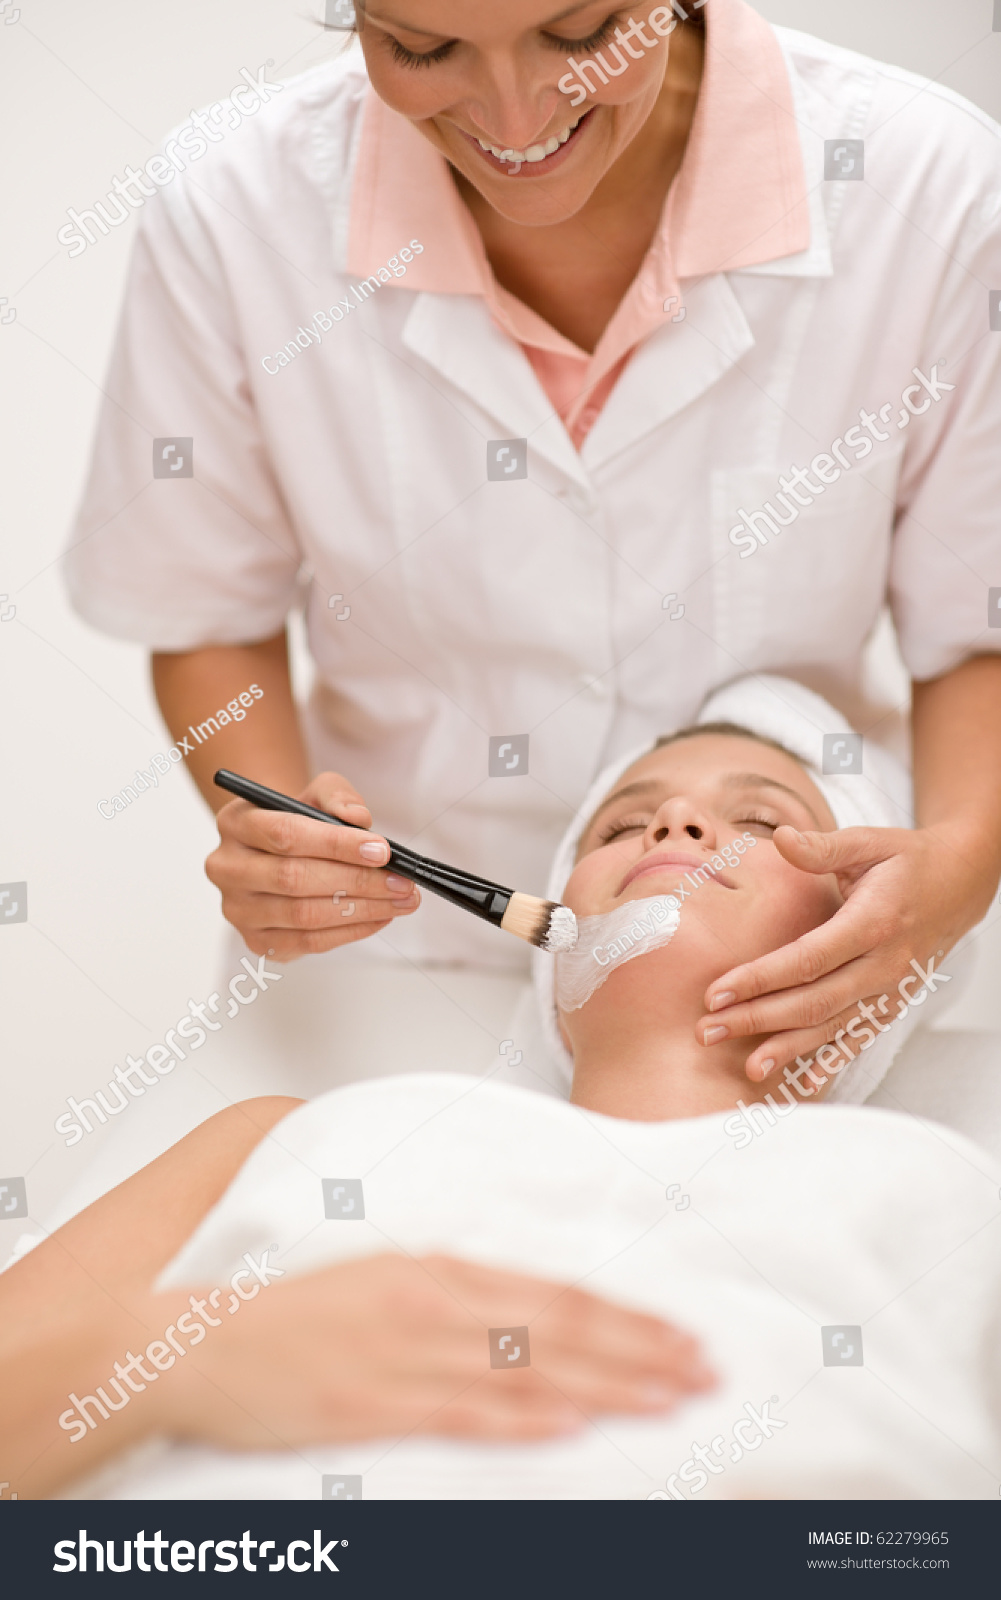 Woman at luxury spa beauty treatment getting facial mask for A trial beauty treatment salon